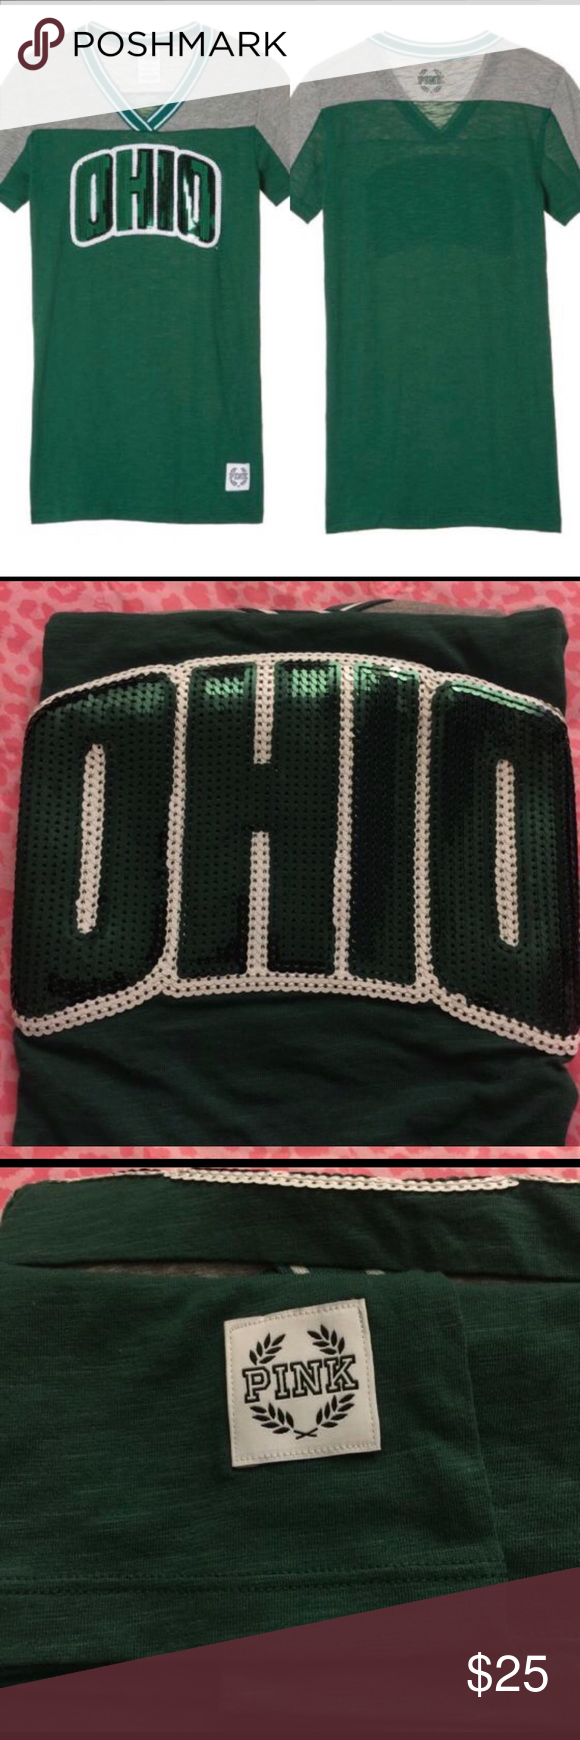 VS PINK 'OHIO' bling fitted V-neck tee. NWT. M. Brand new with tags. VS PINK collegiate collection. However, it just says OHIO in front, so collegiate or not, anyone can wear this. Fitted V-neck Size M tee. Ask any questions. Bundle and save. PINK Victoria's Secret Tops Tees - Short Sleeve